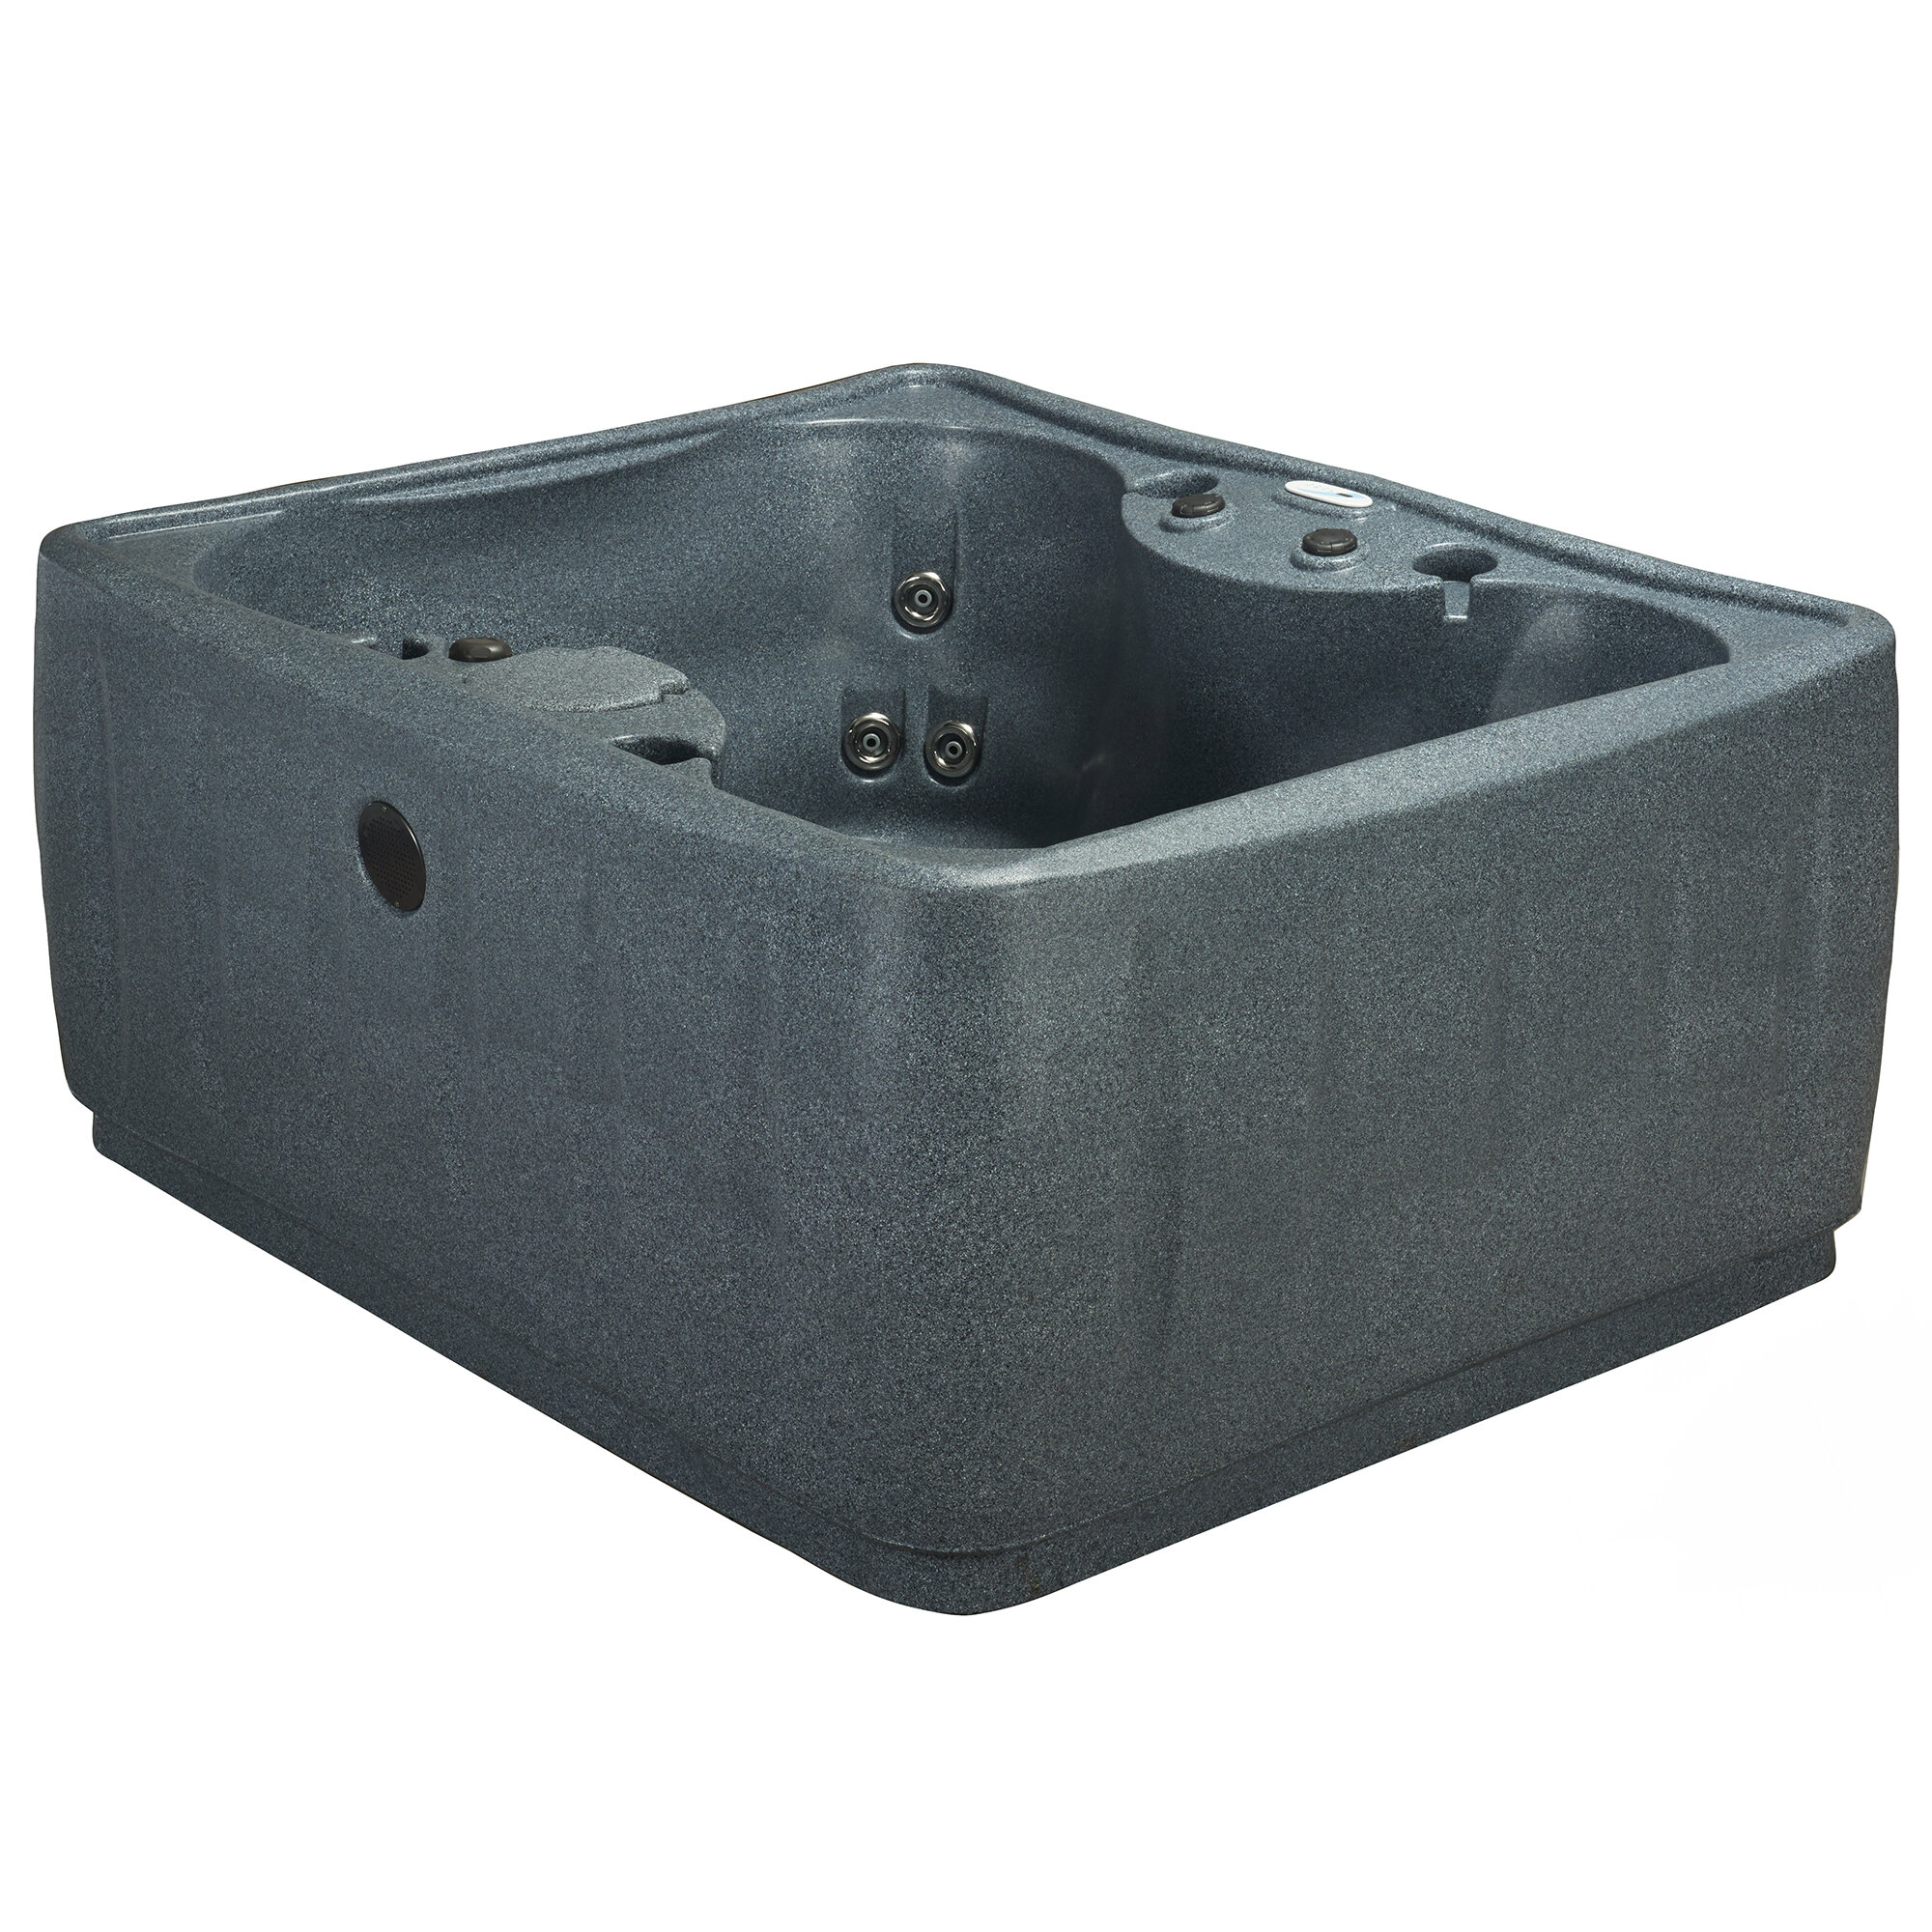 tub img us for used tubs hot sale sold